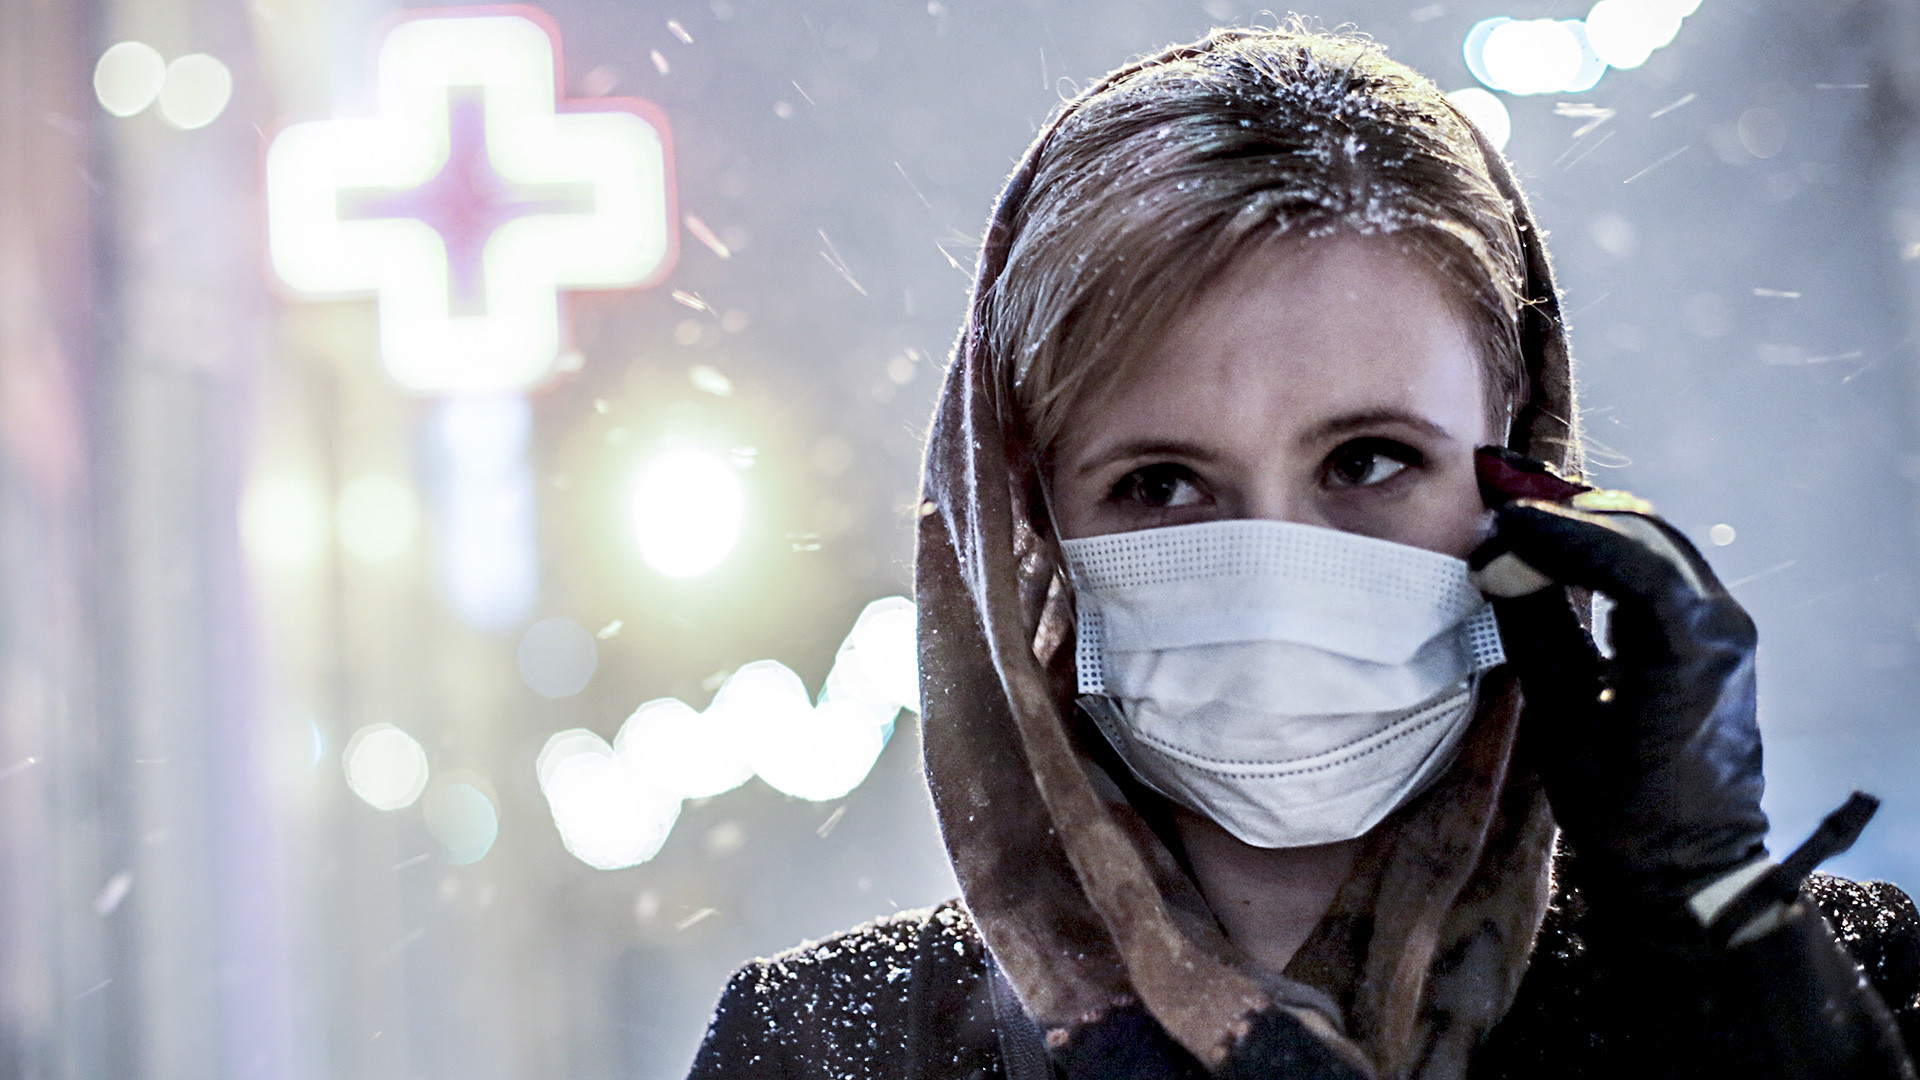 Russia. Novosibirsk. January 28. A girl in a medical mask on one of the streets of the city.